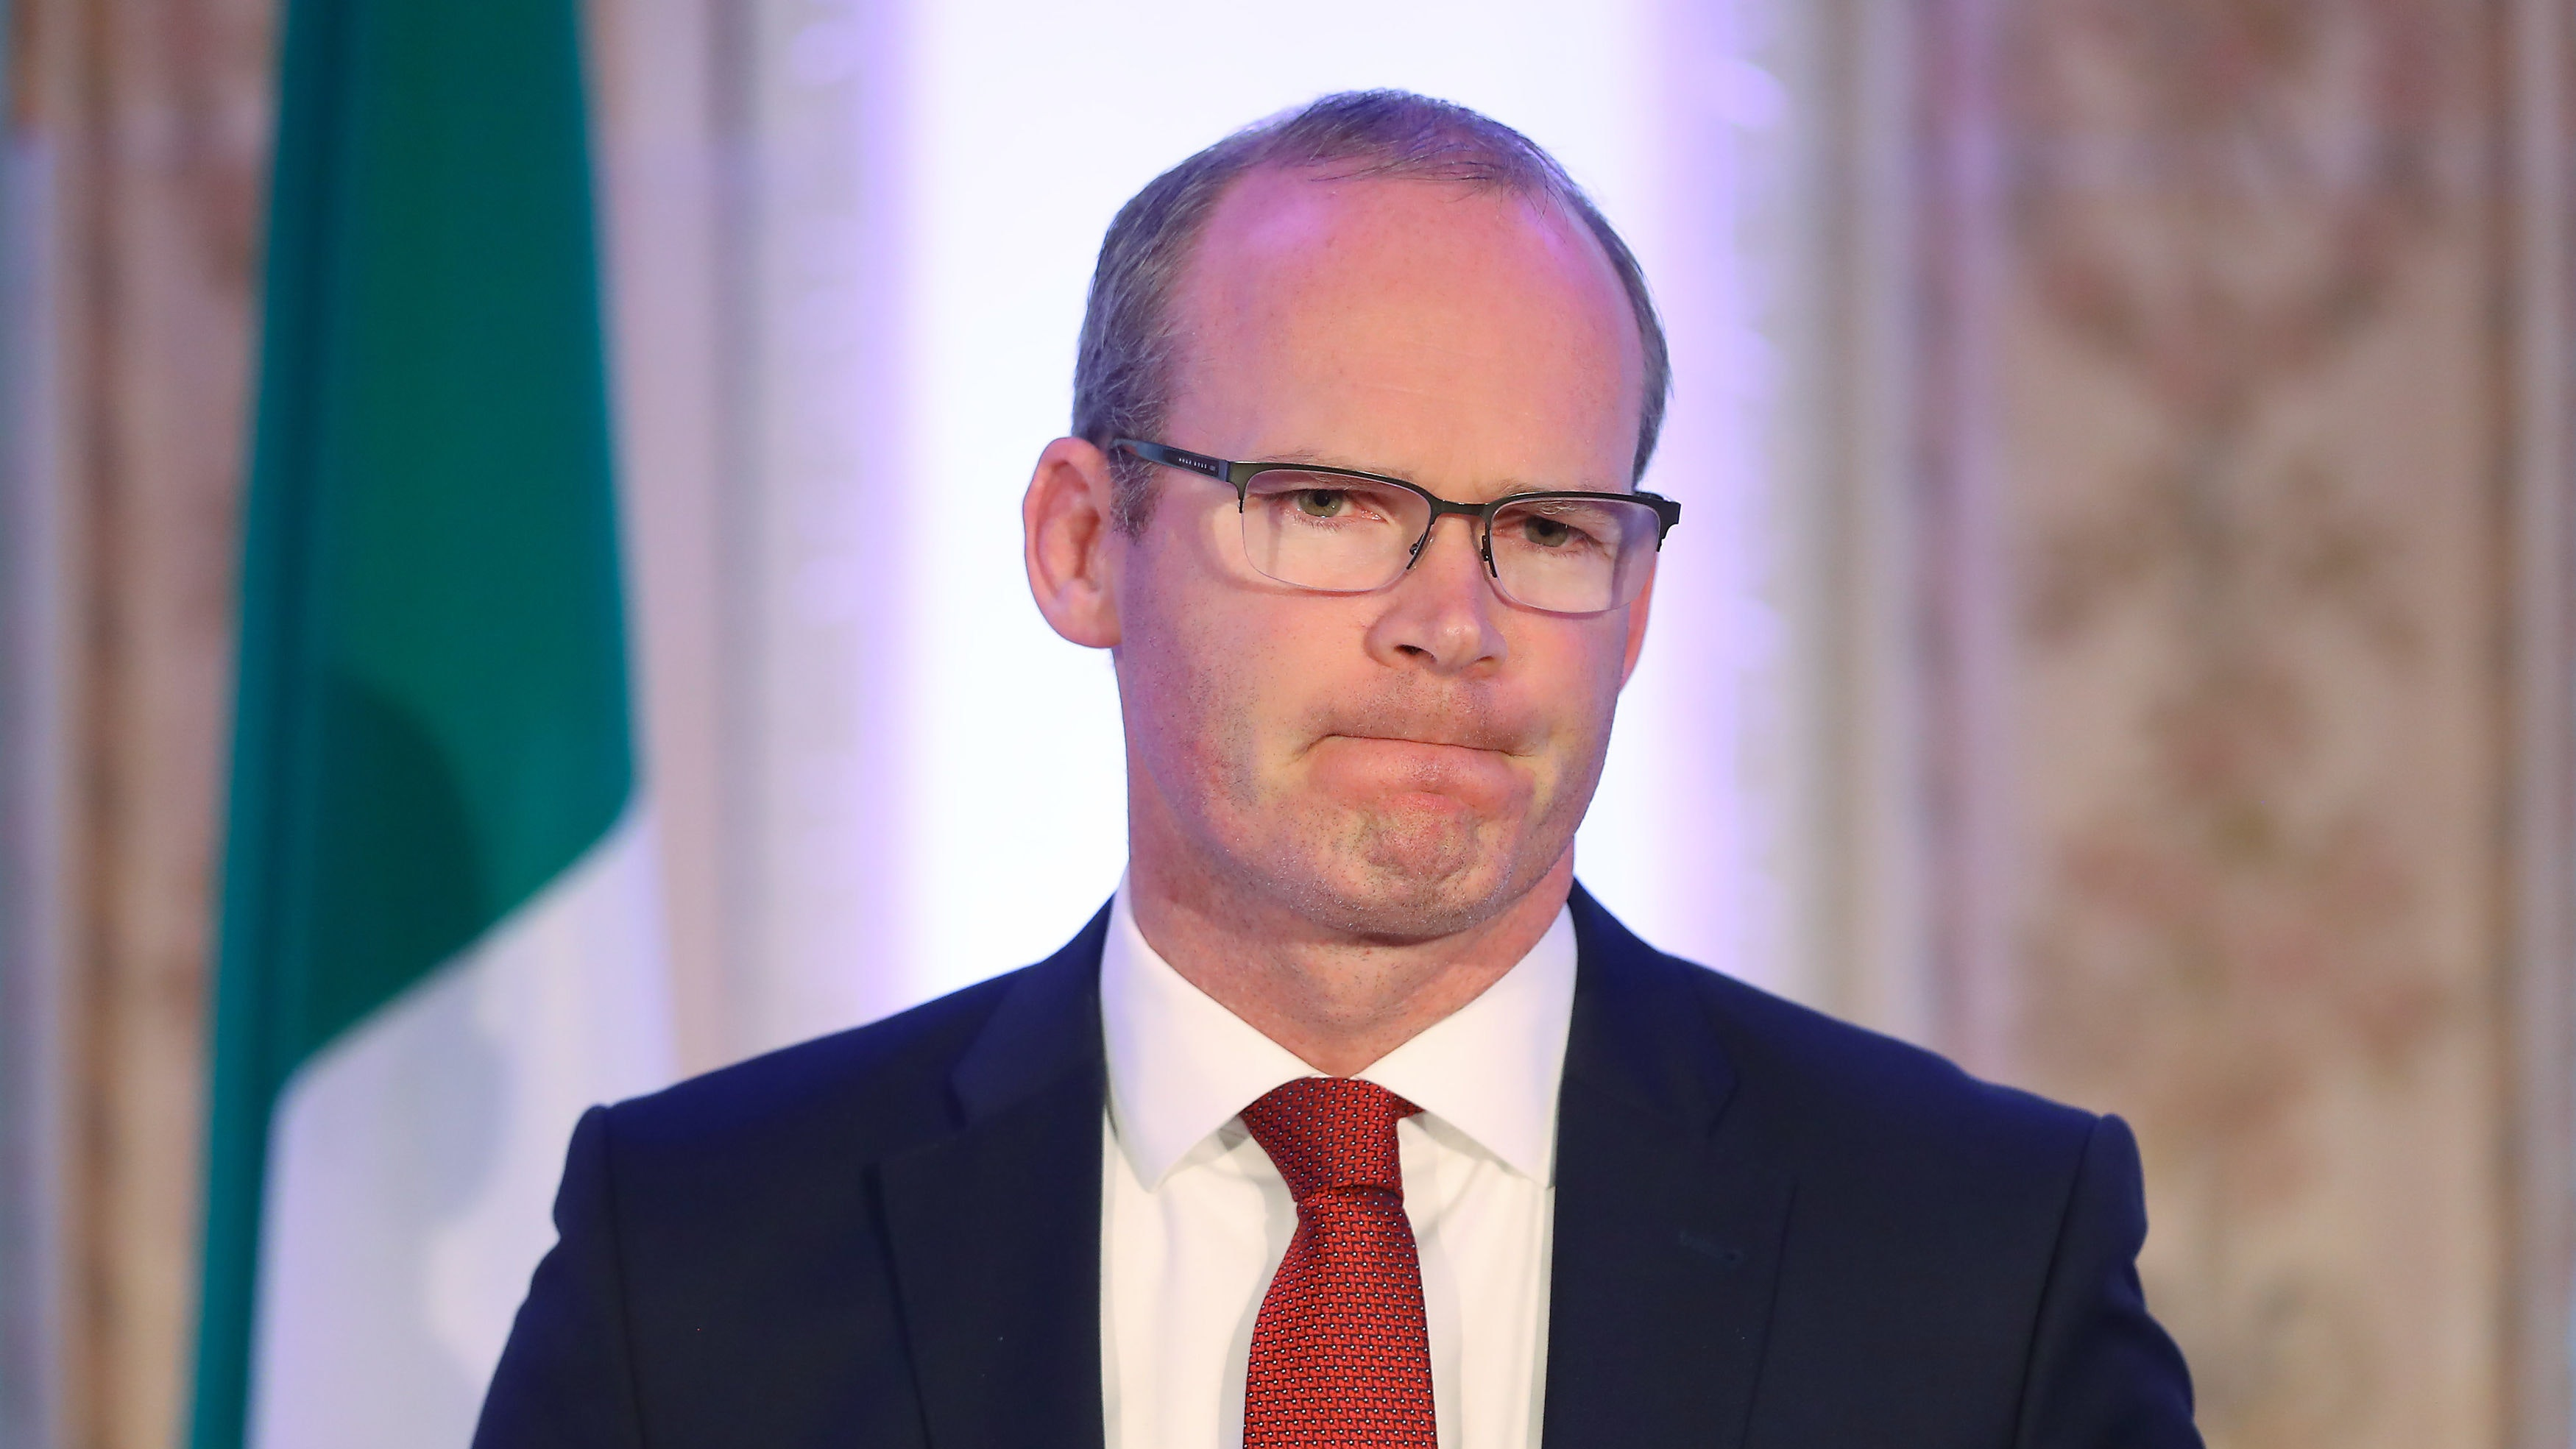 Irish women are subject to British abortion law unless people vote to  return powers to their own country, the Irish deputy premier said.